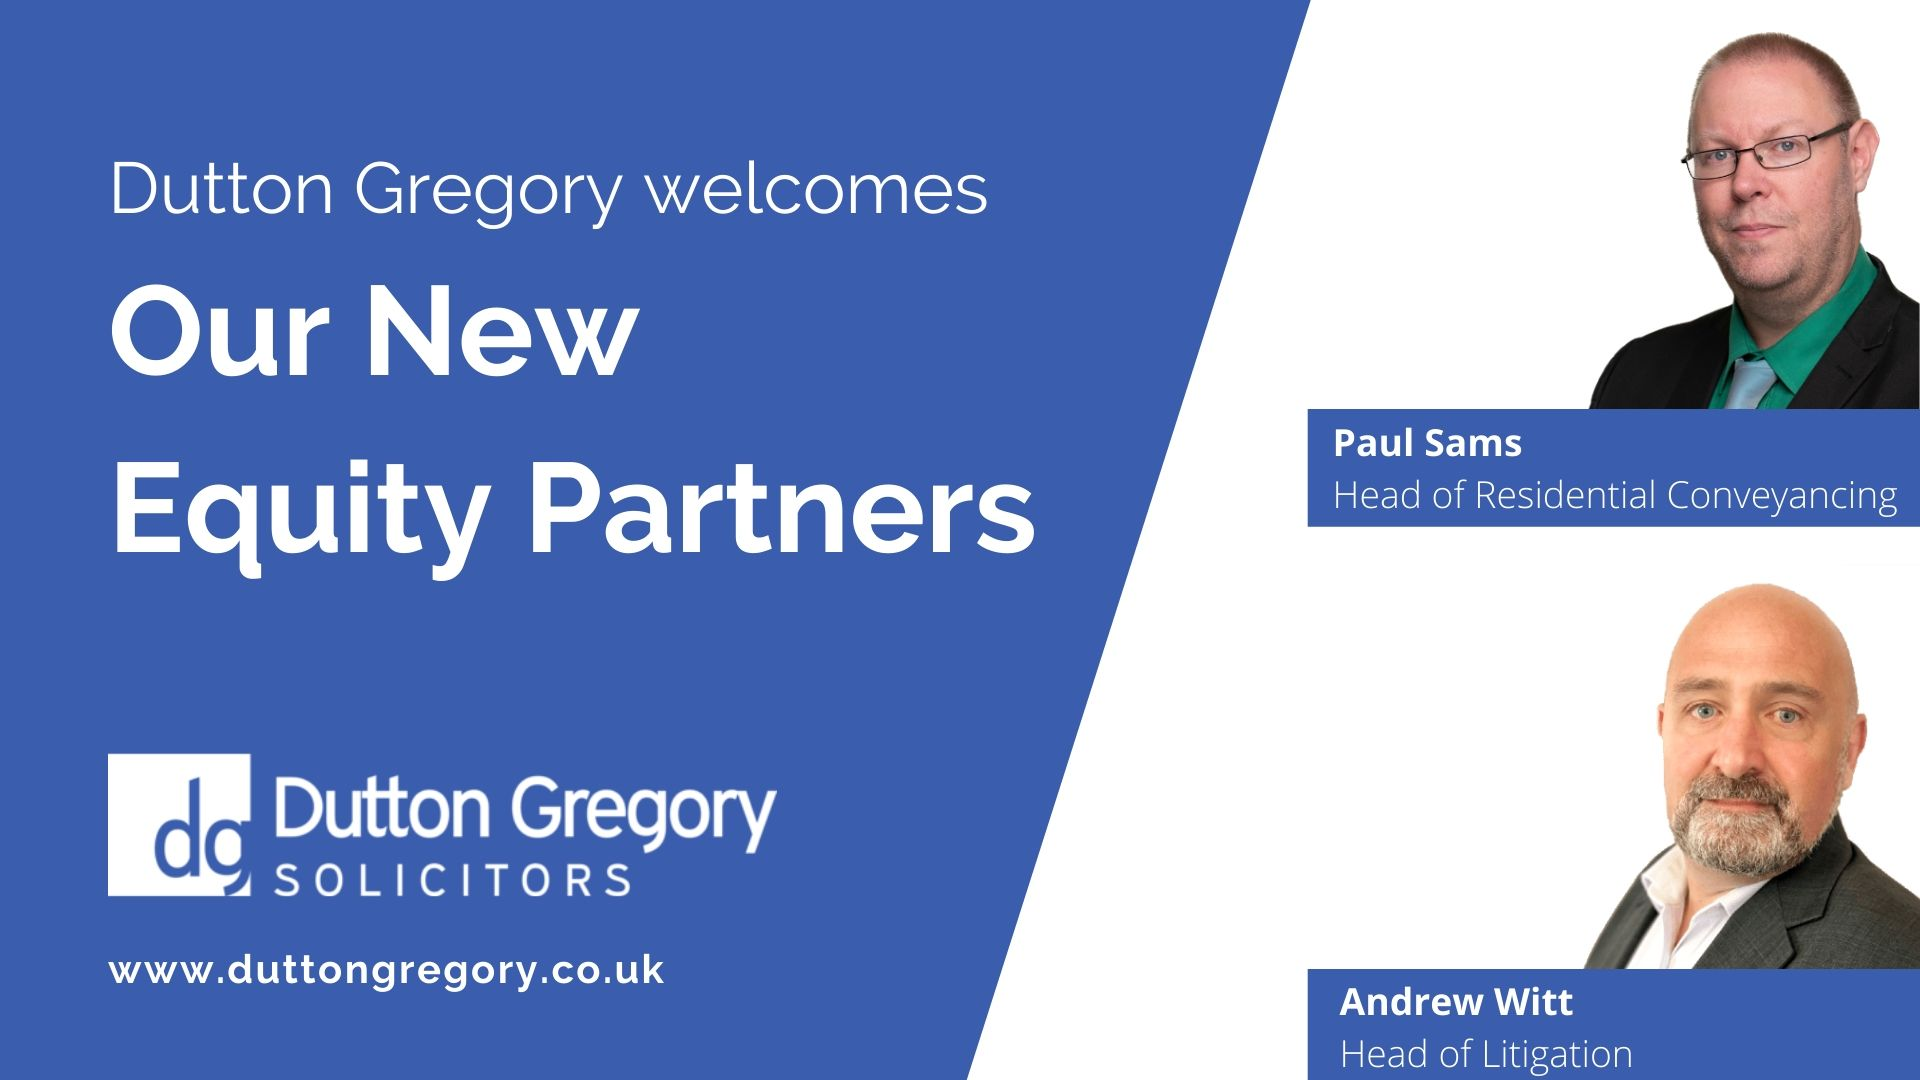 Dutton Gregory welcomes two new Equity Partners